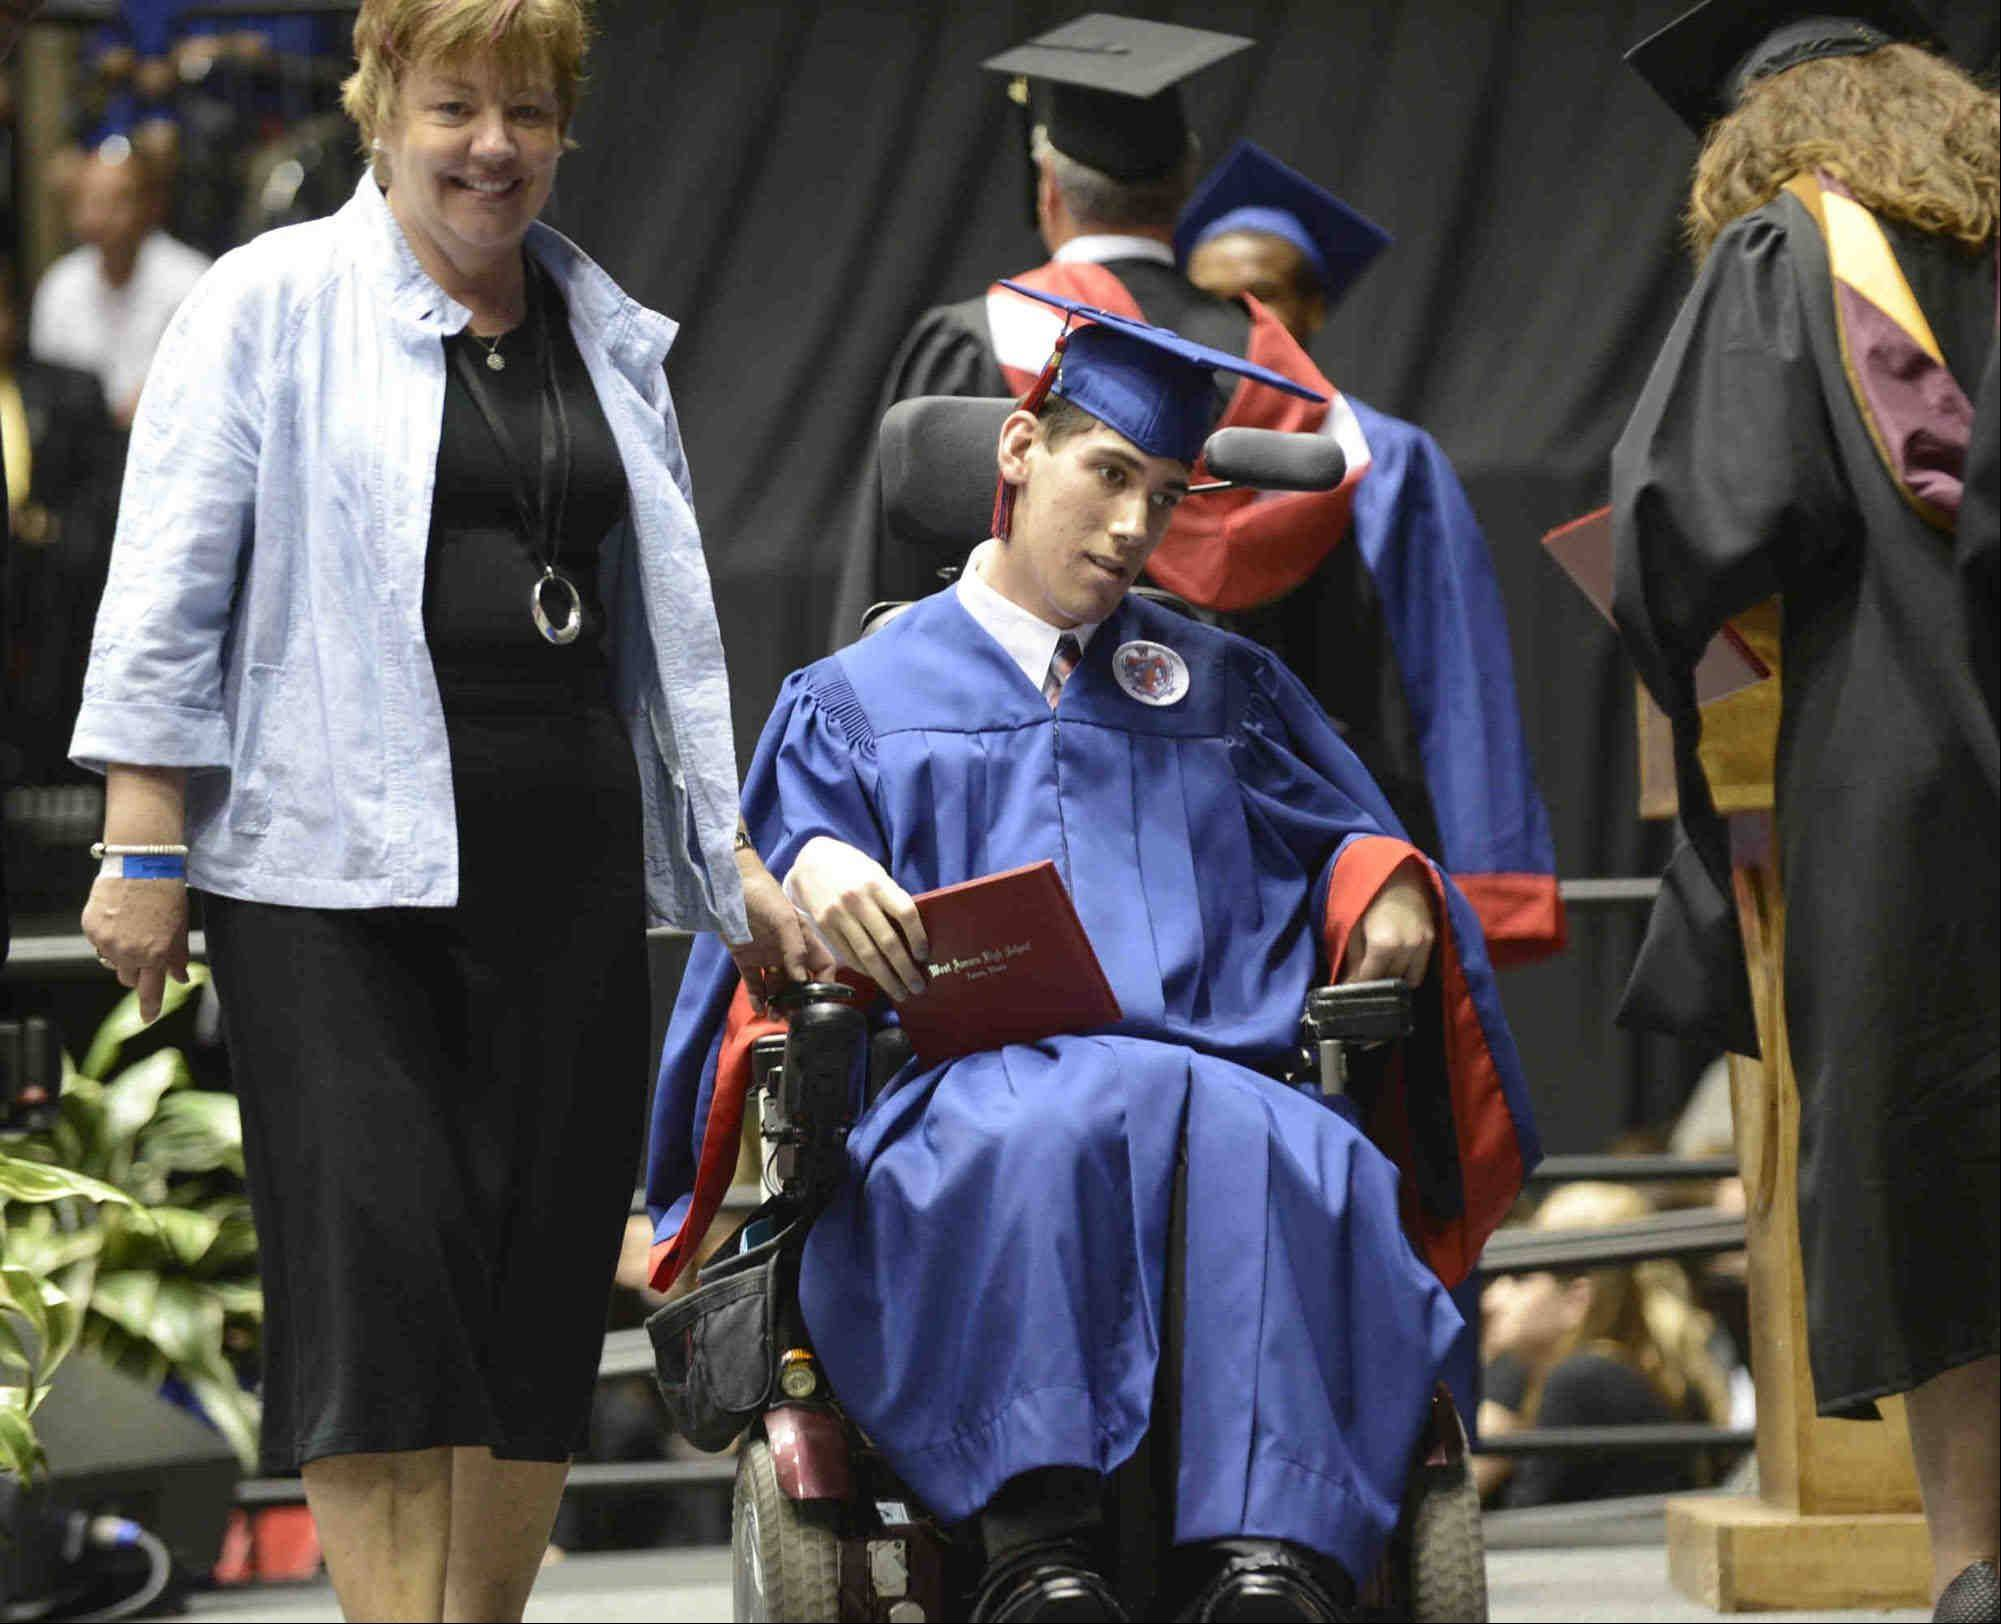 Images from the West Aurora High School graduation ceremony Sunday, May 19, 2013 at the NIU Convocation Center in Dekalb.